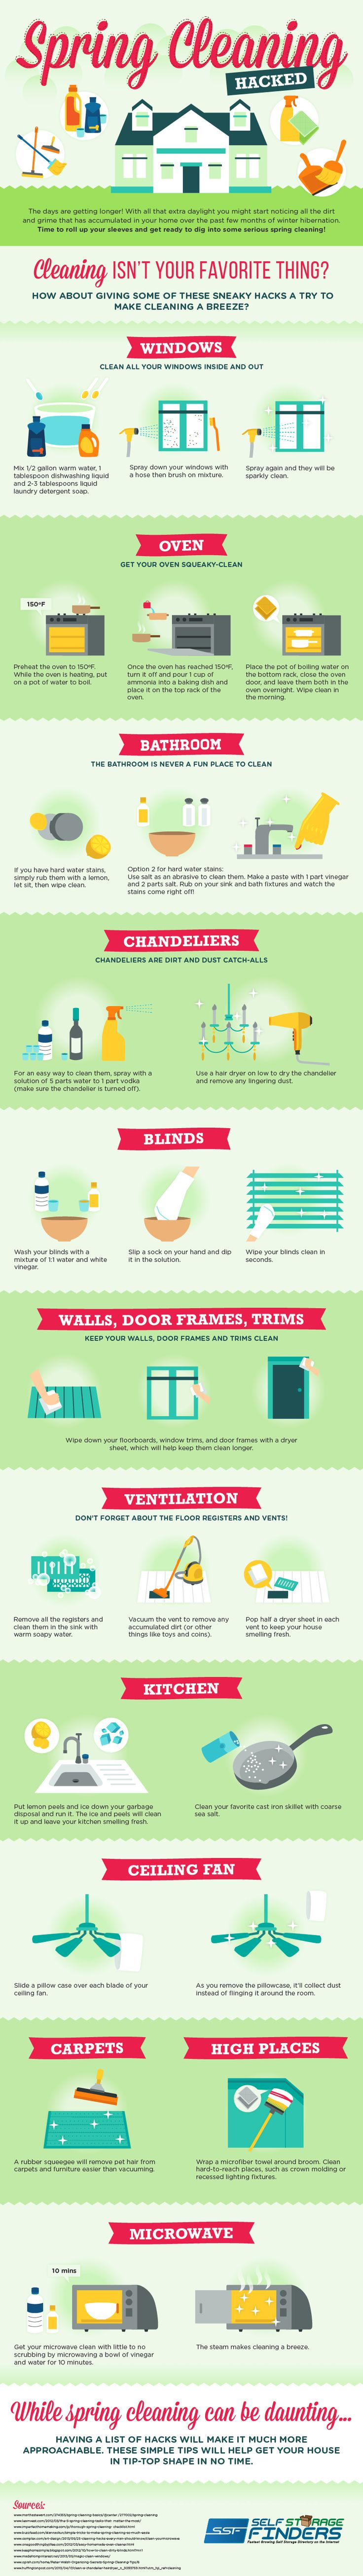 Spring Cleaning Hacks | #SpringCleaning #SpringClean #DeepCleaning #Cleaning101 #Cleaning #HouseCleaning